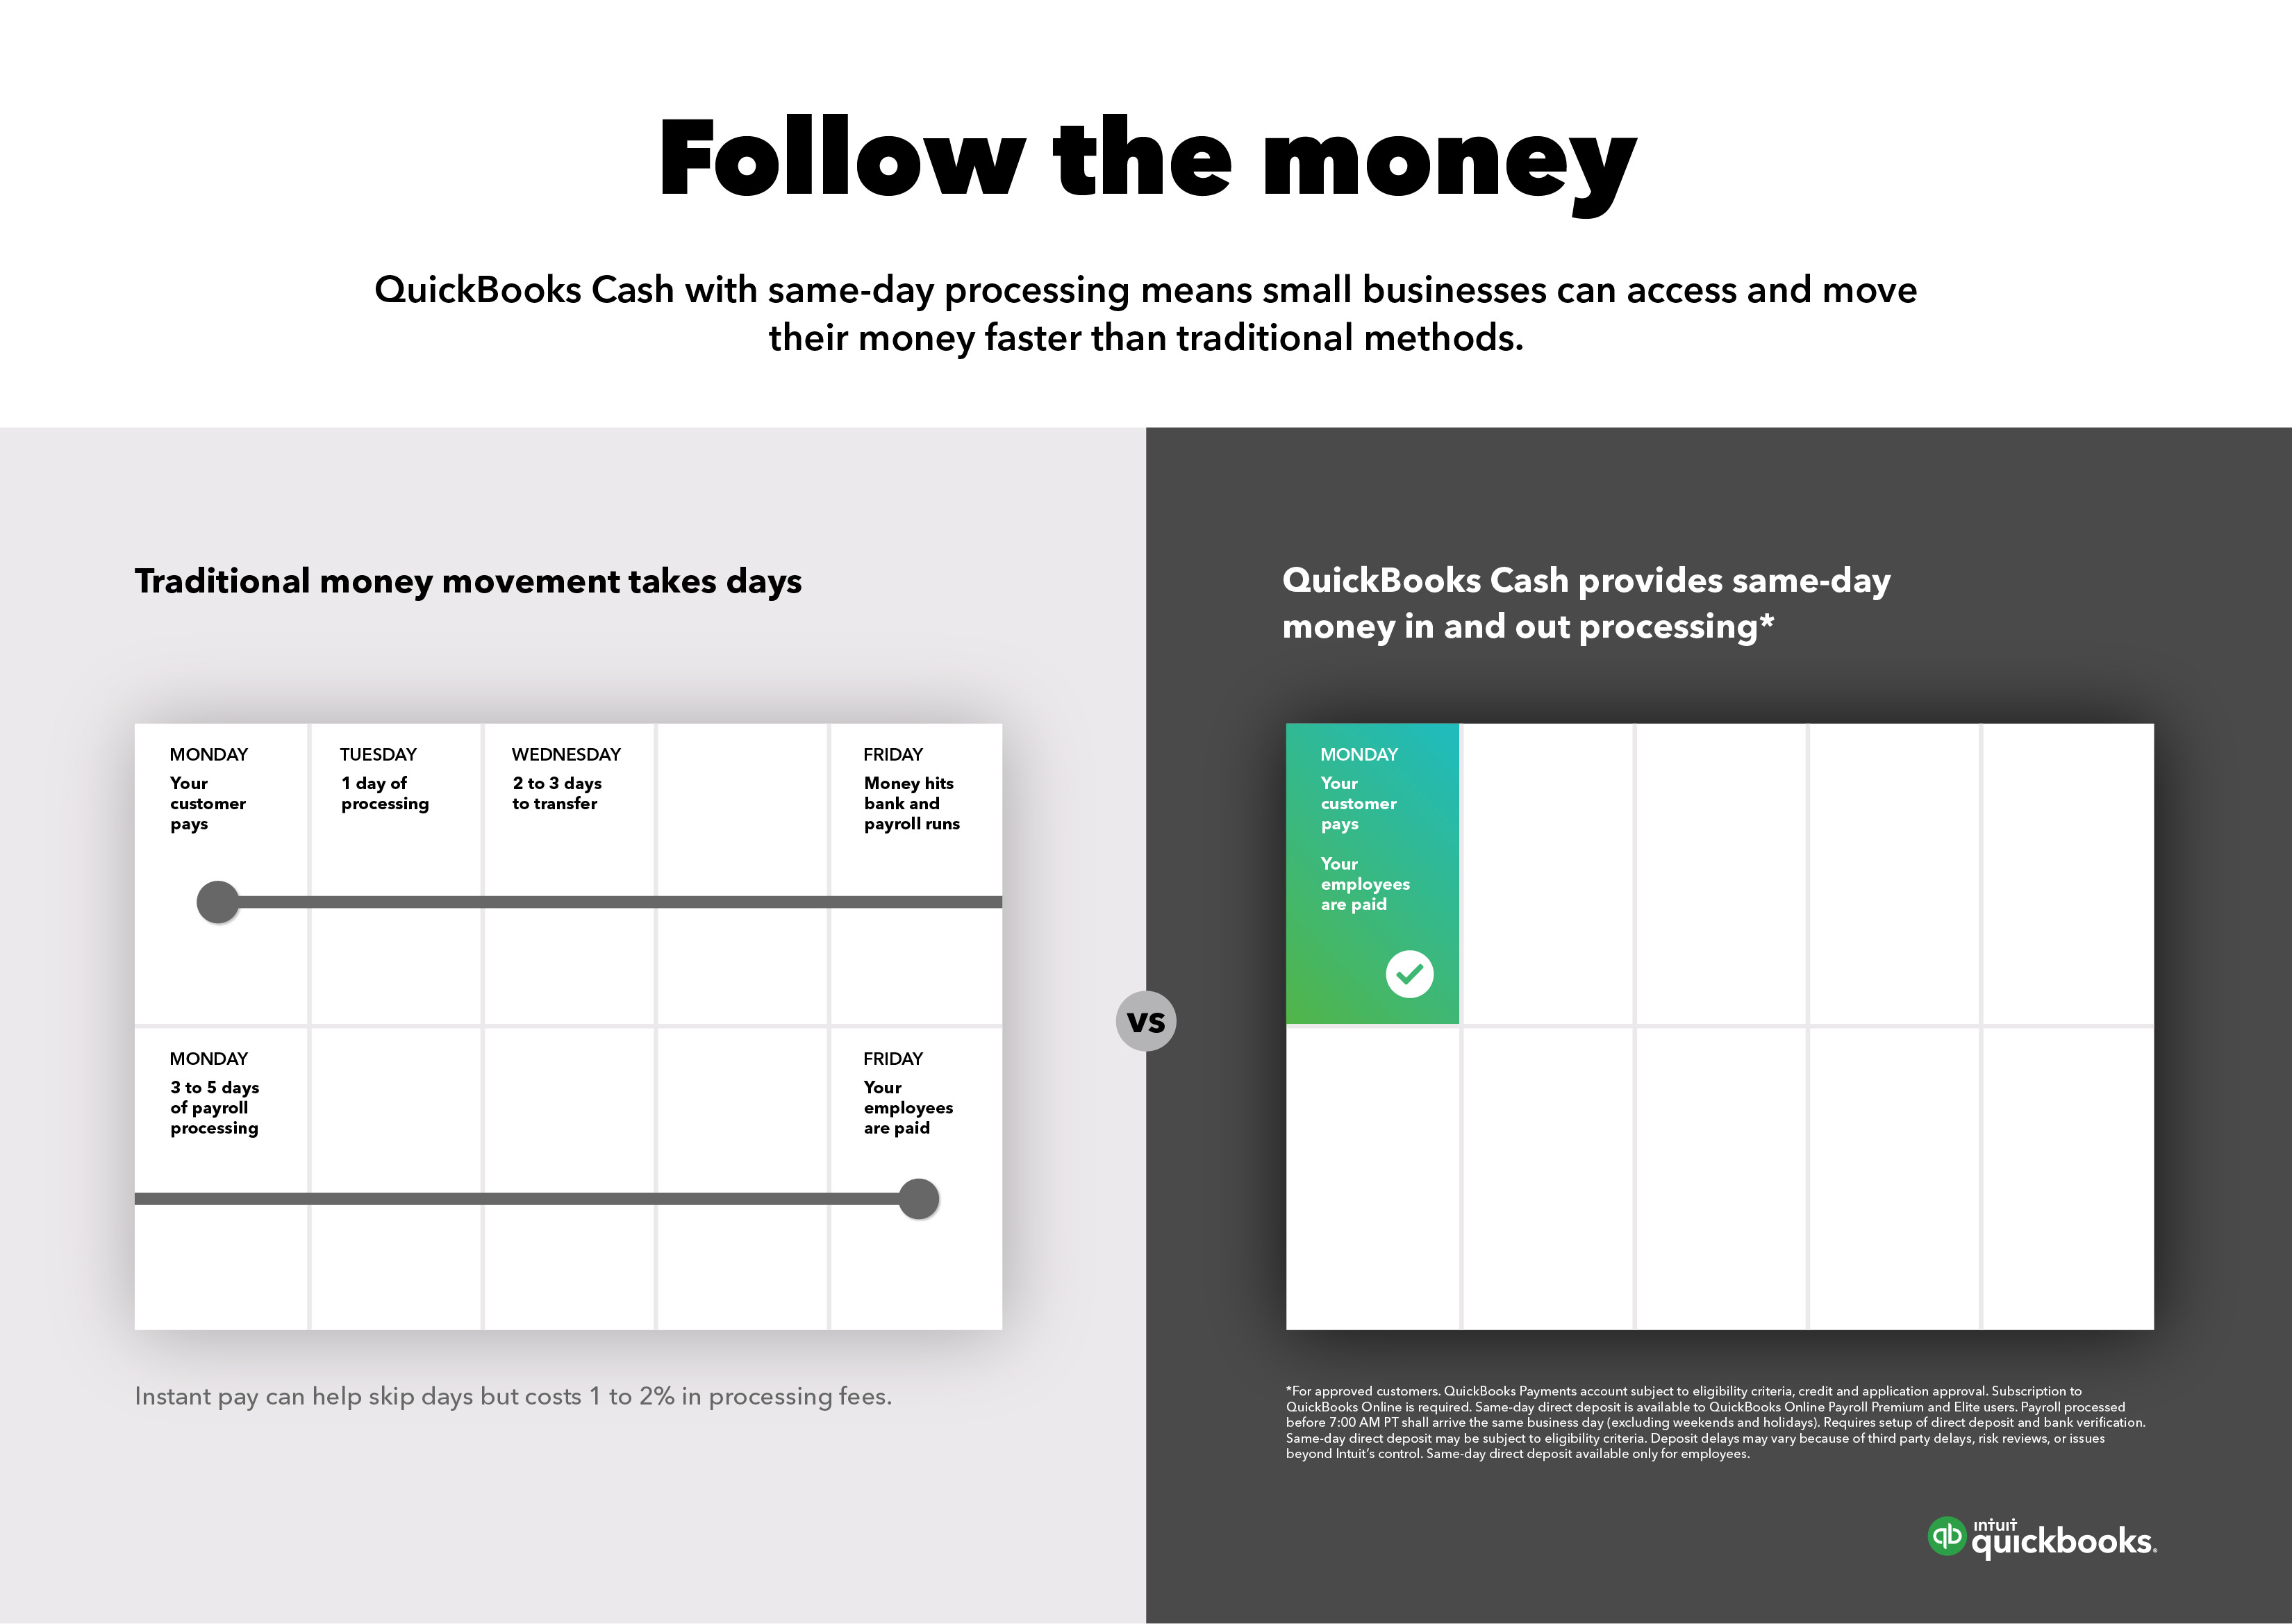 QB Cash Launch_Follow The Money Infographic